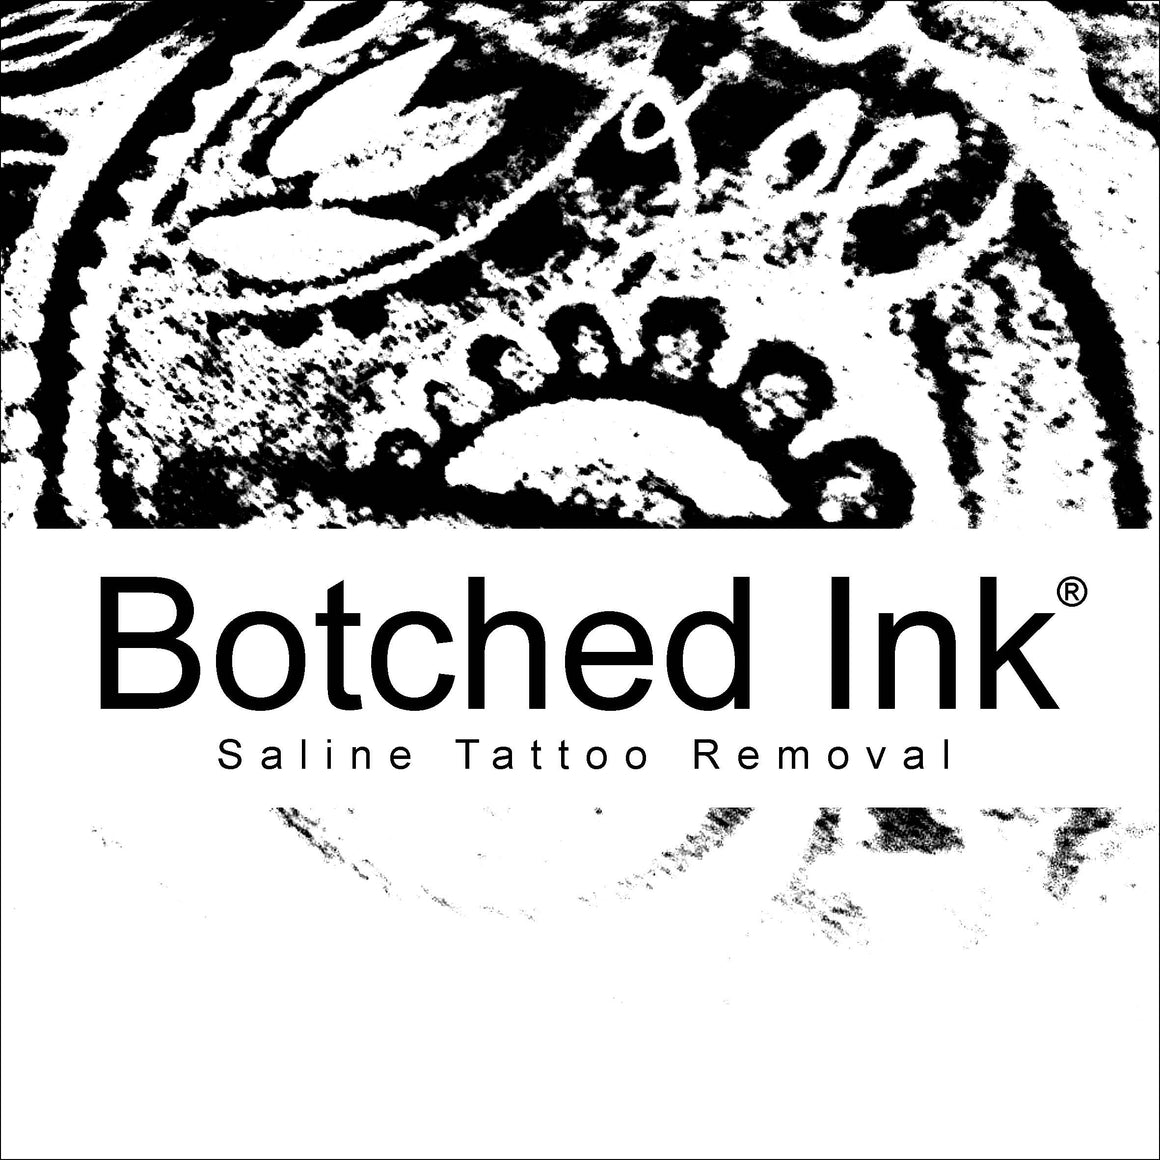 Botched Ink® Saline Tattoo Removal Course Workshop Training